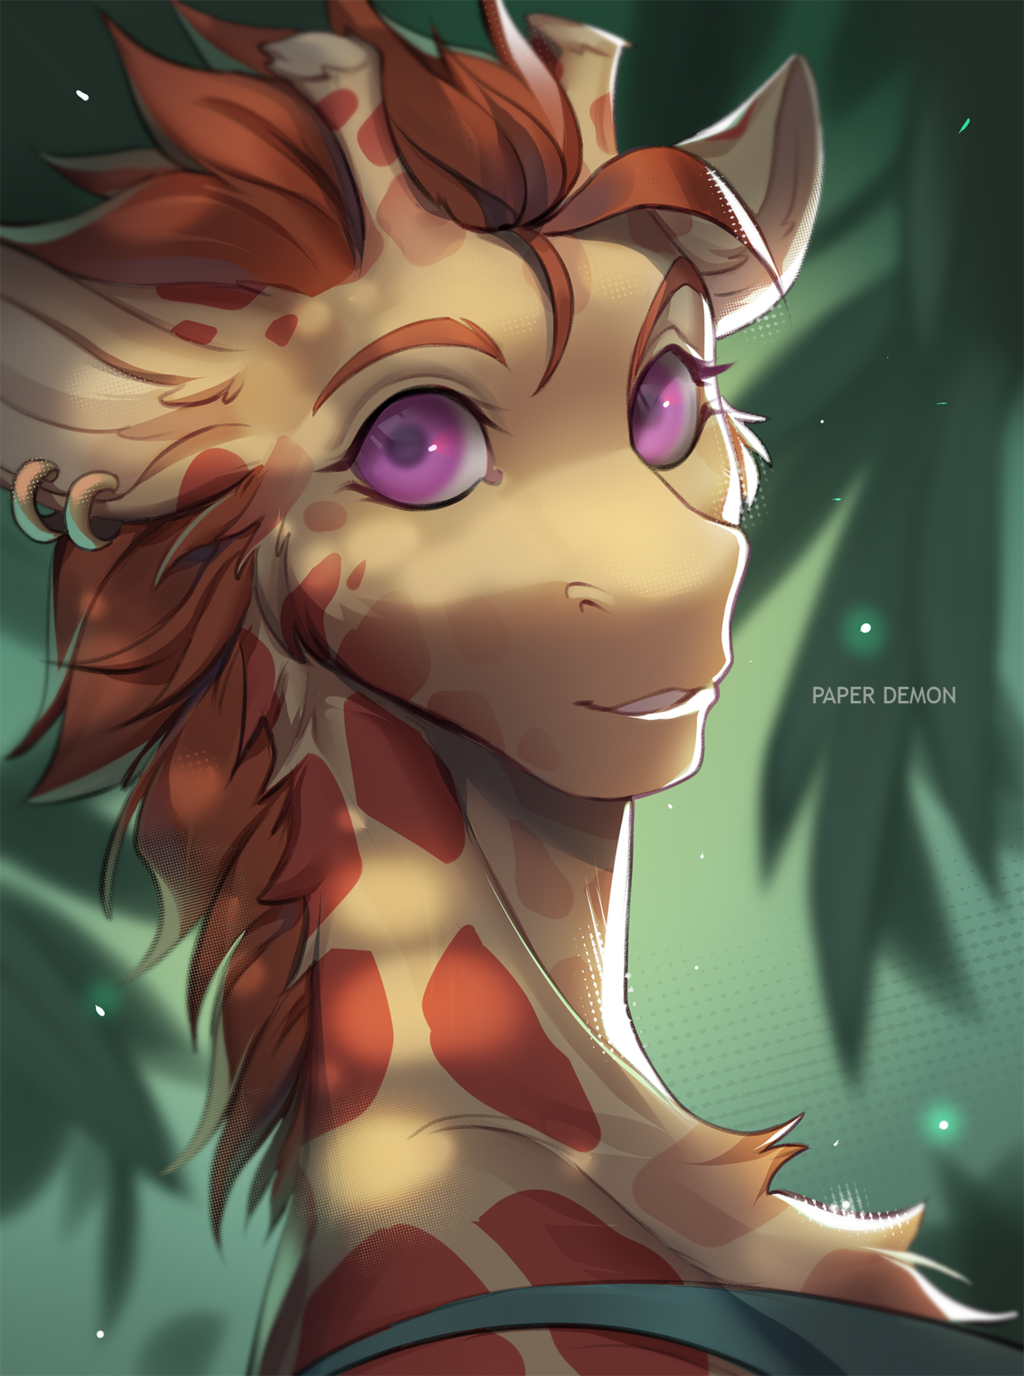 Hello There - By Paper Demon